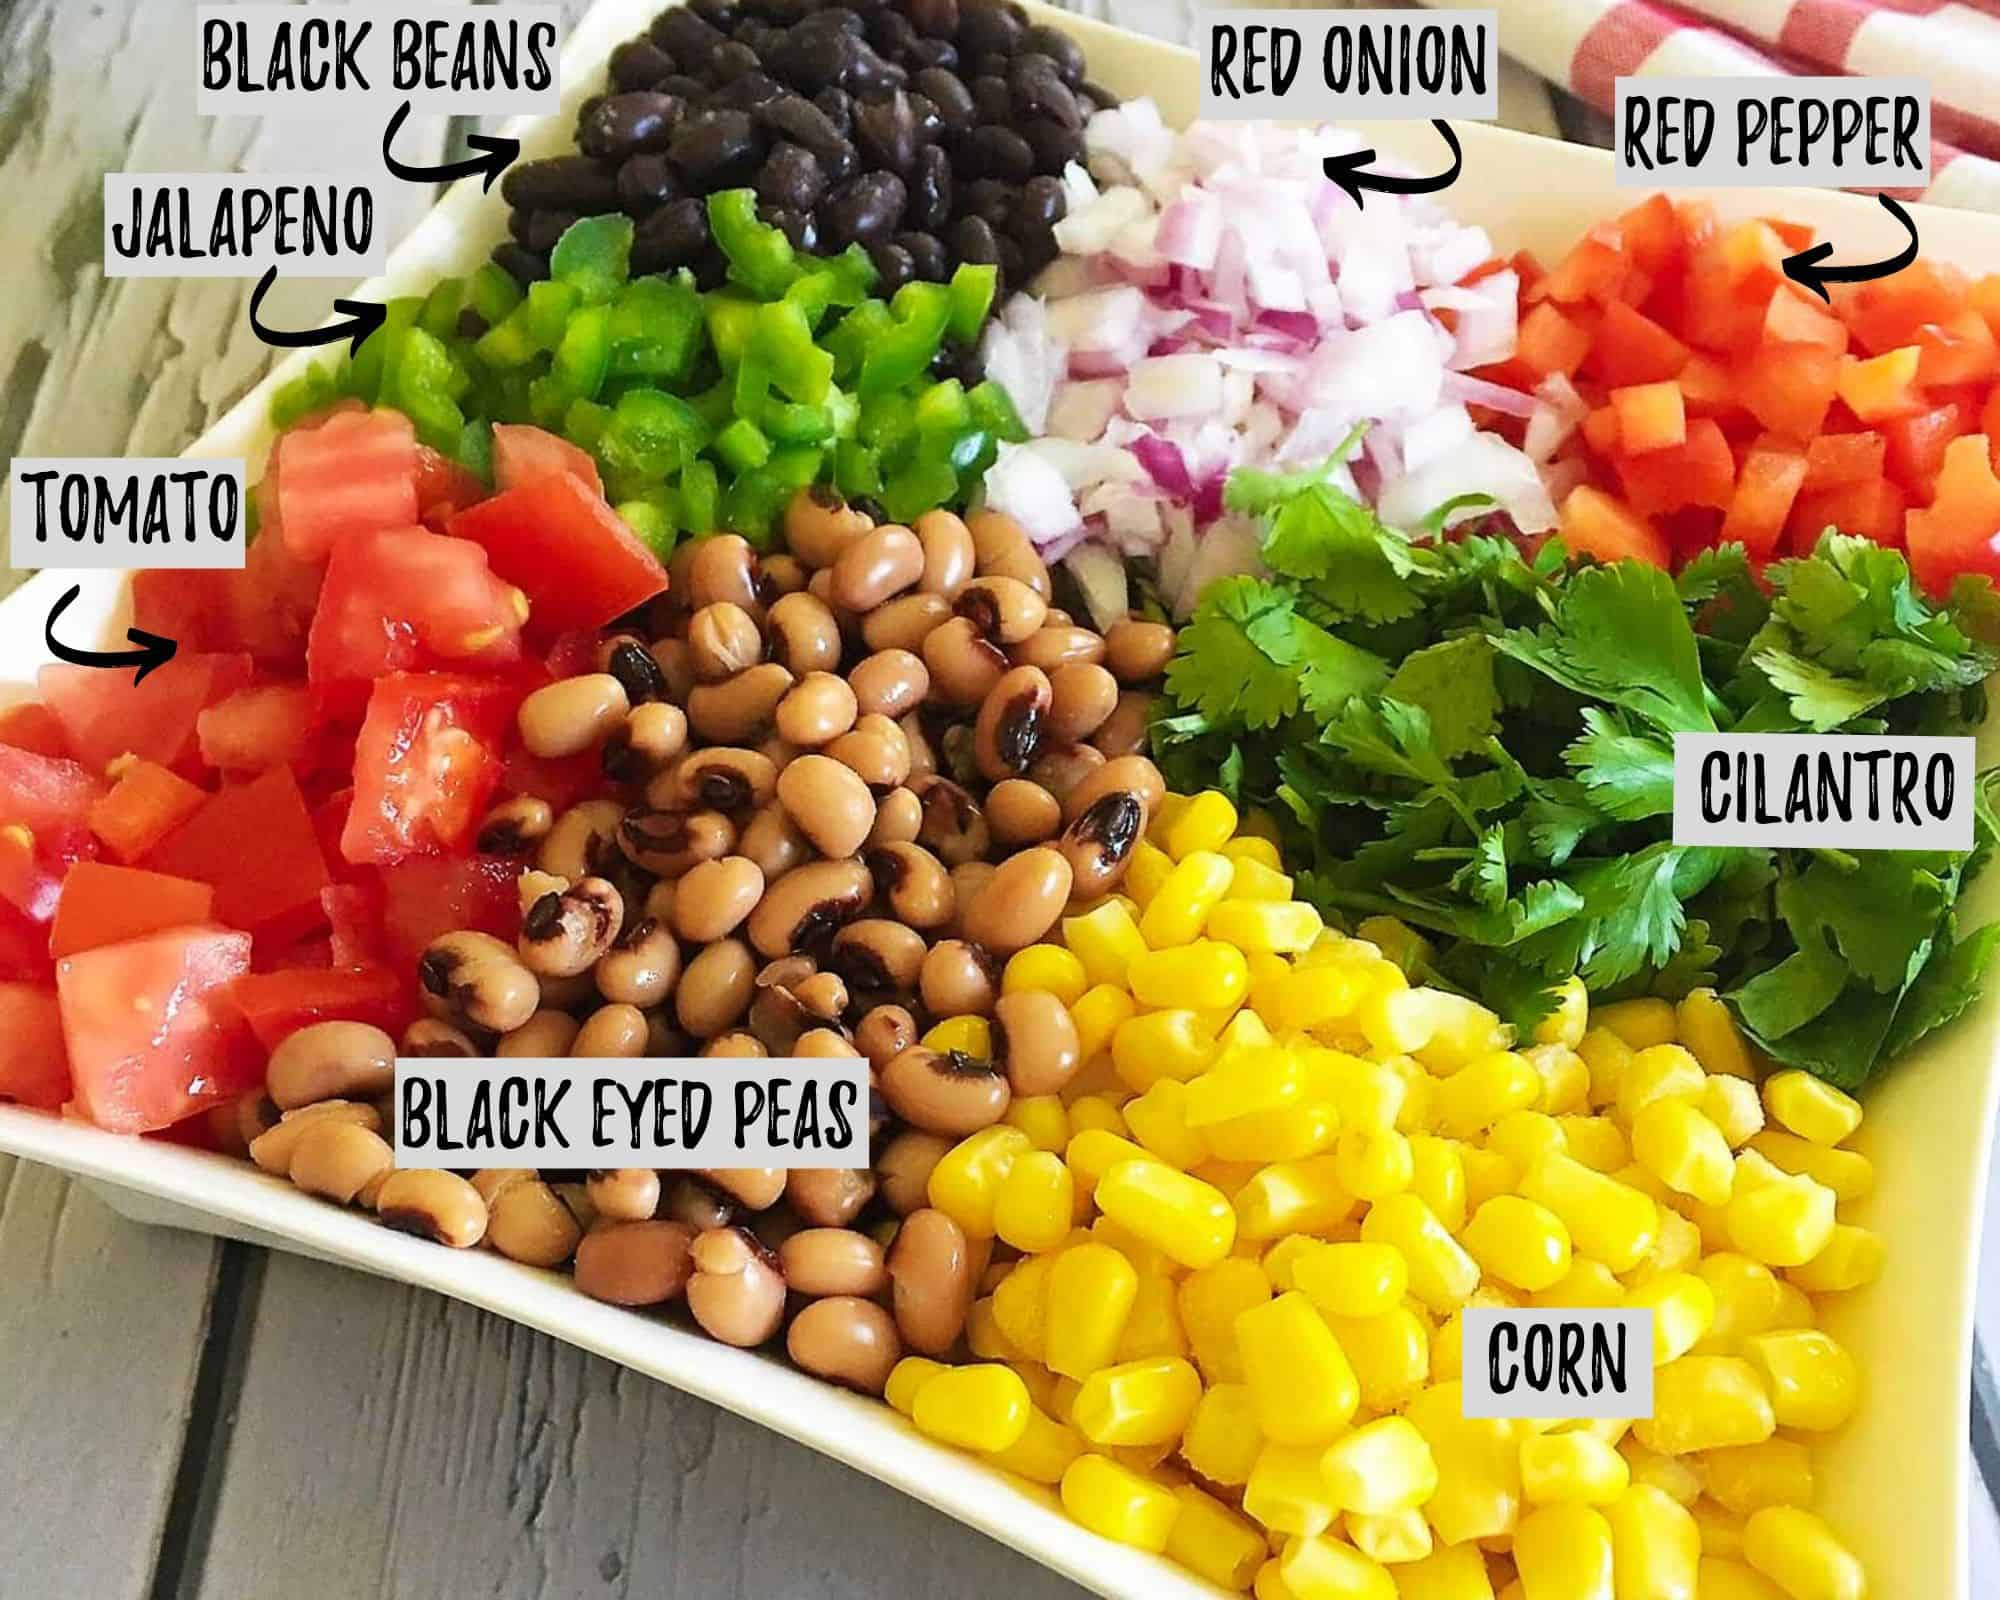 ingredients to make cowboy caviar: beans, tomato, corn, cilantro, red pepper, jalapeno, red onion